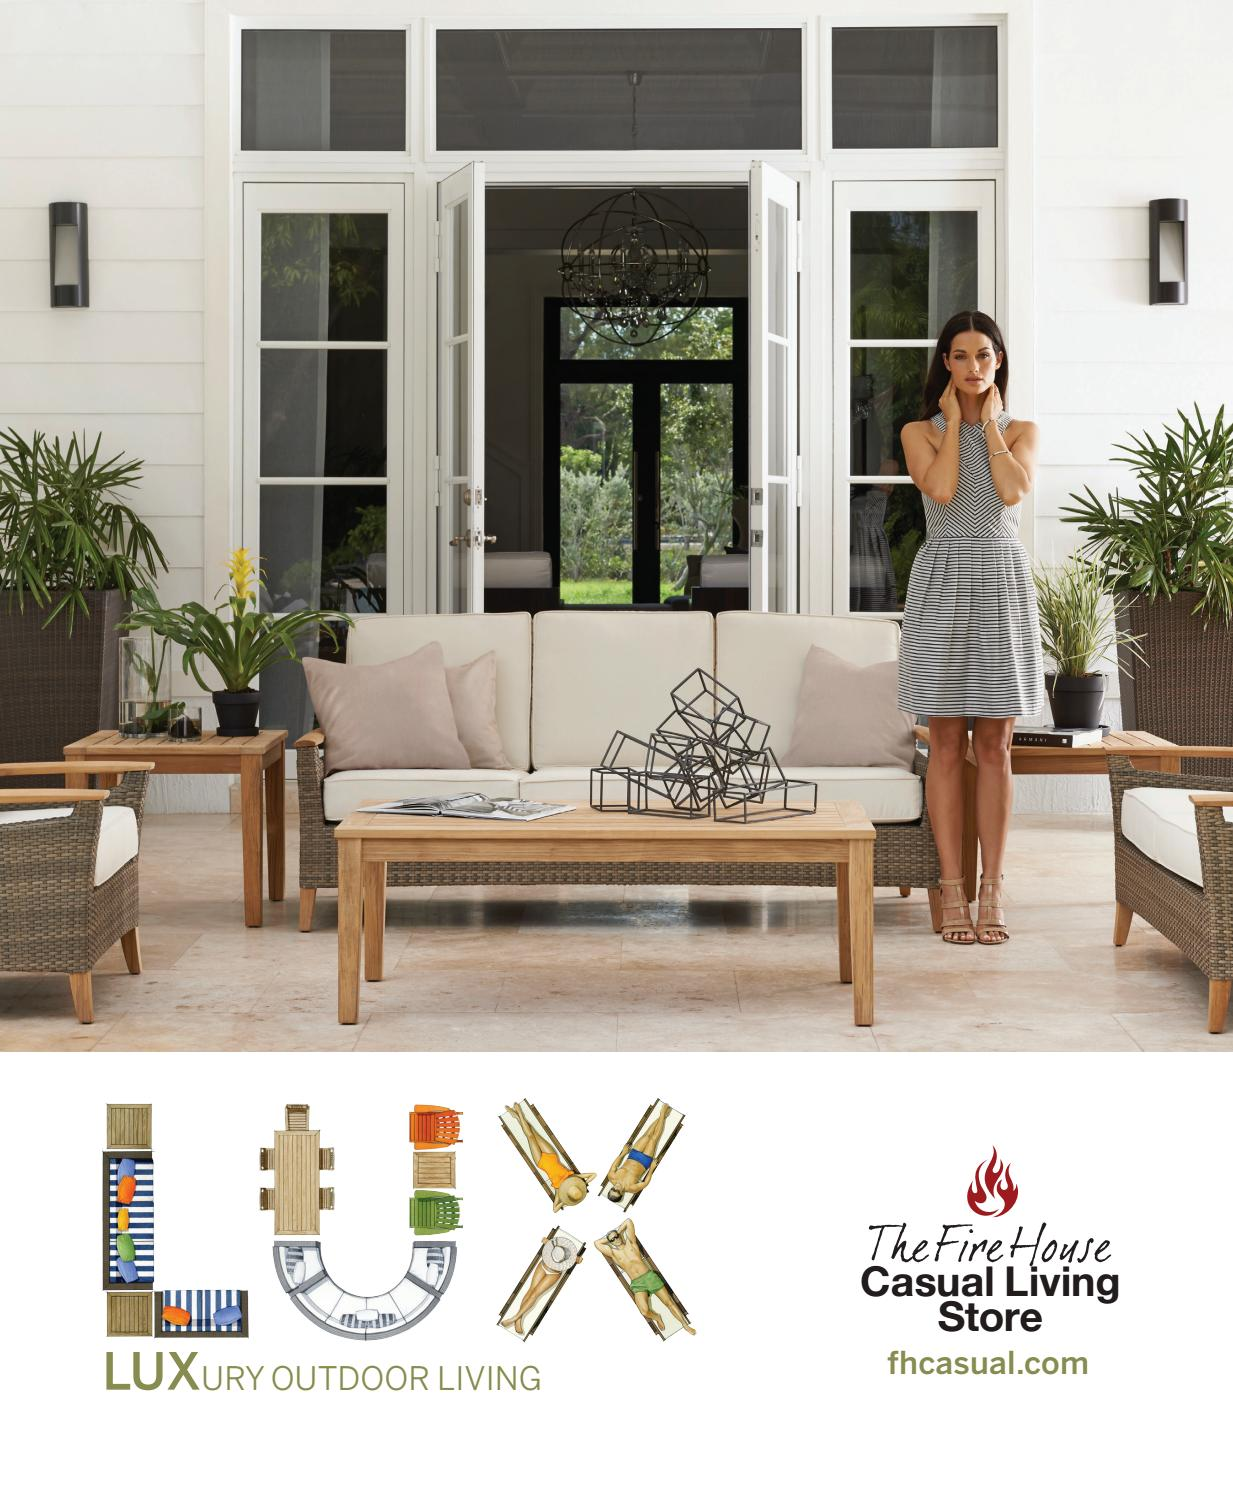 Beau Fire House Casual Living Outdoor Furniture Sale   Spring 2018 Catalog By  Digital Media And Publishing   Issuu